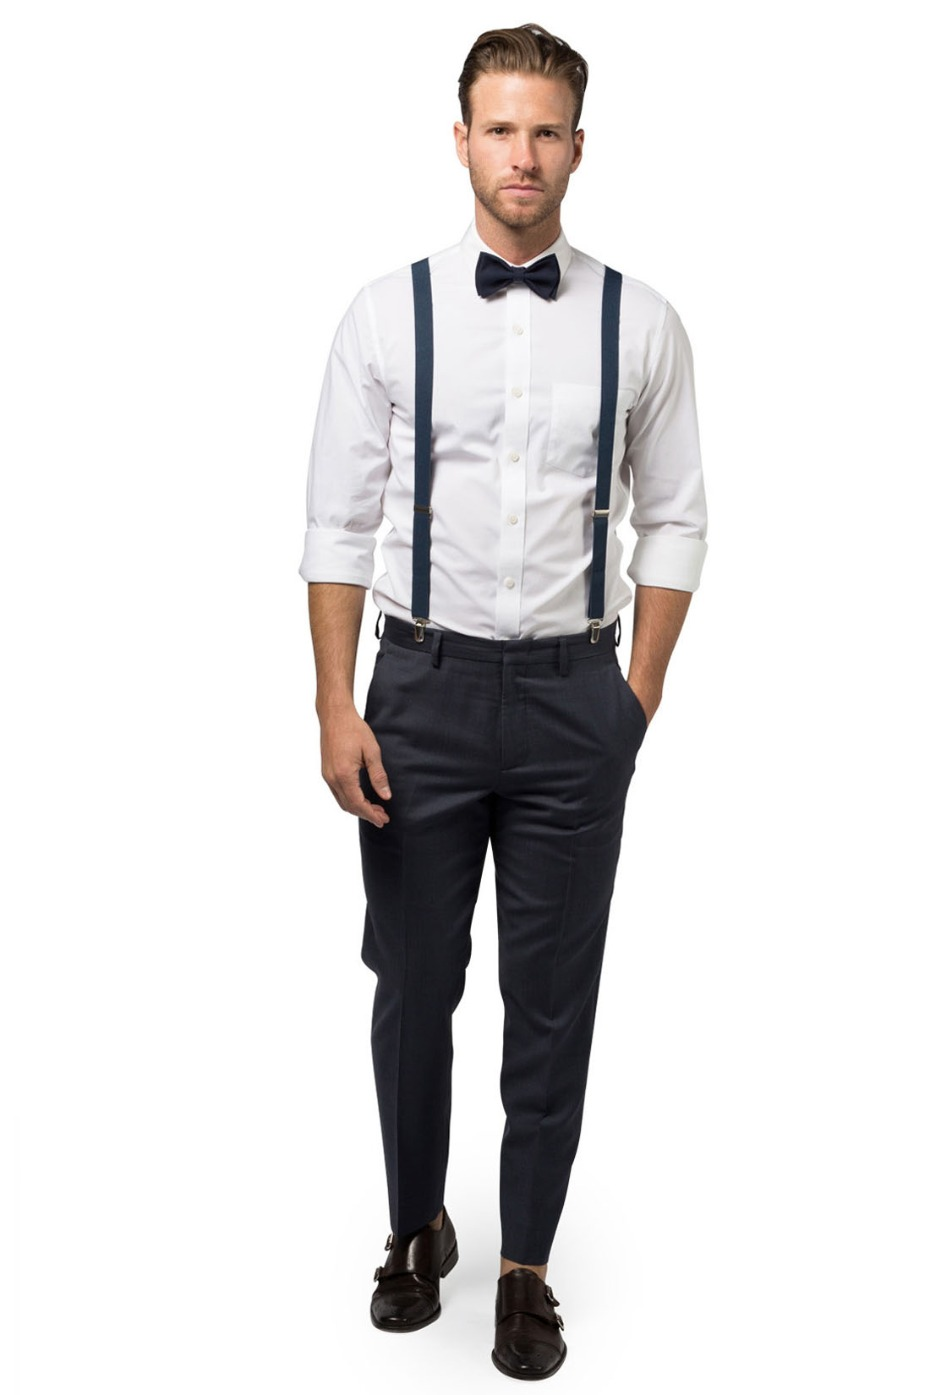 Armoniia Navy Suspenders and Navy Bow Tie